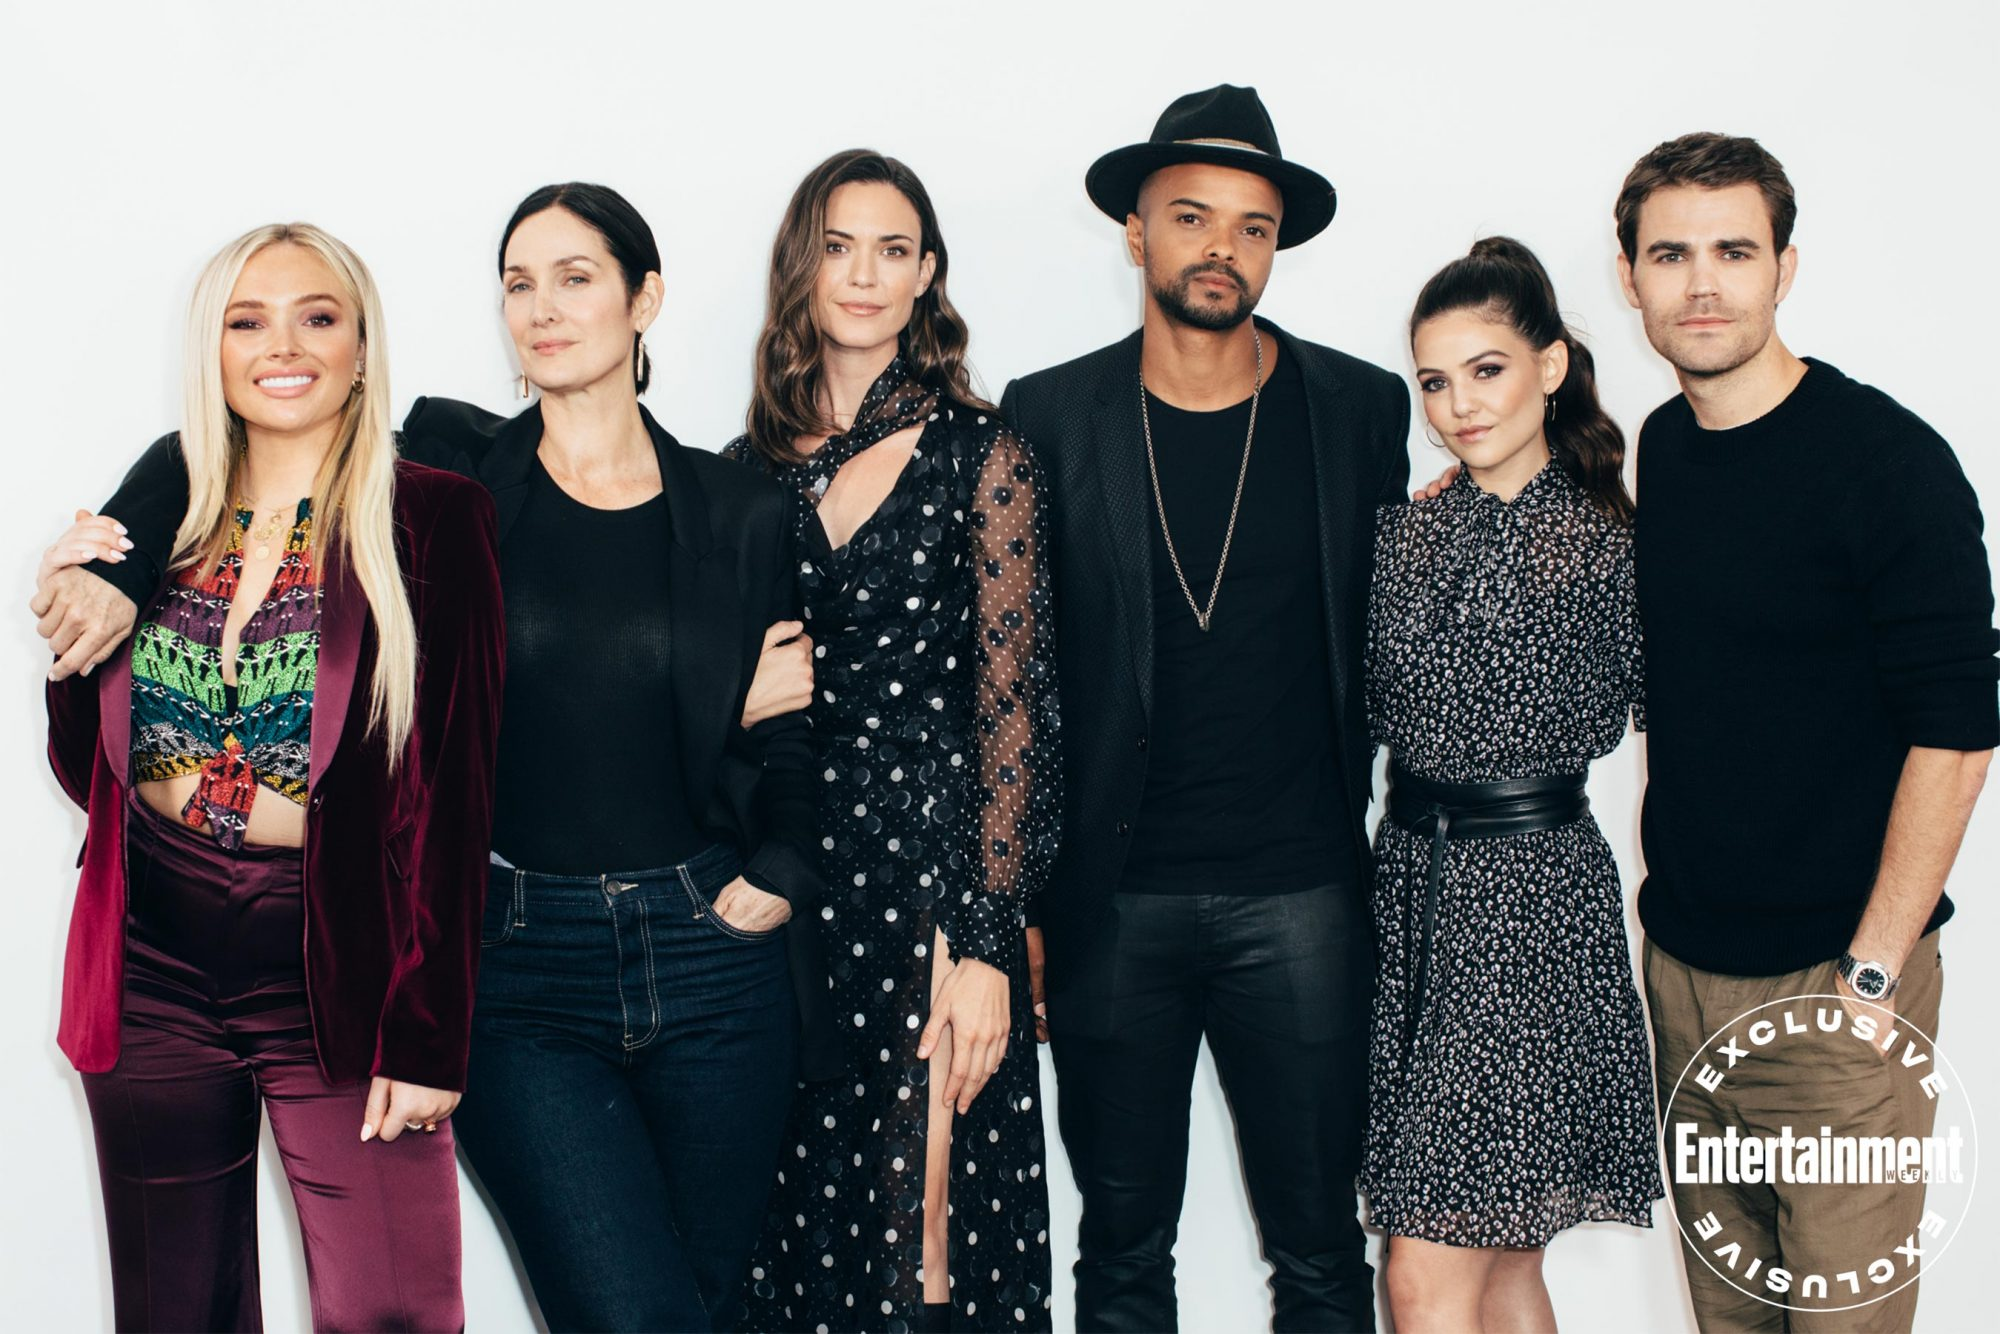 Natalie Alyn Lind, Carrie-Anne Moss, Odette Annable, Eka Darville, Danielle Campbell, and Paul Wesley from Tell Me a Story